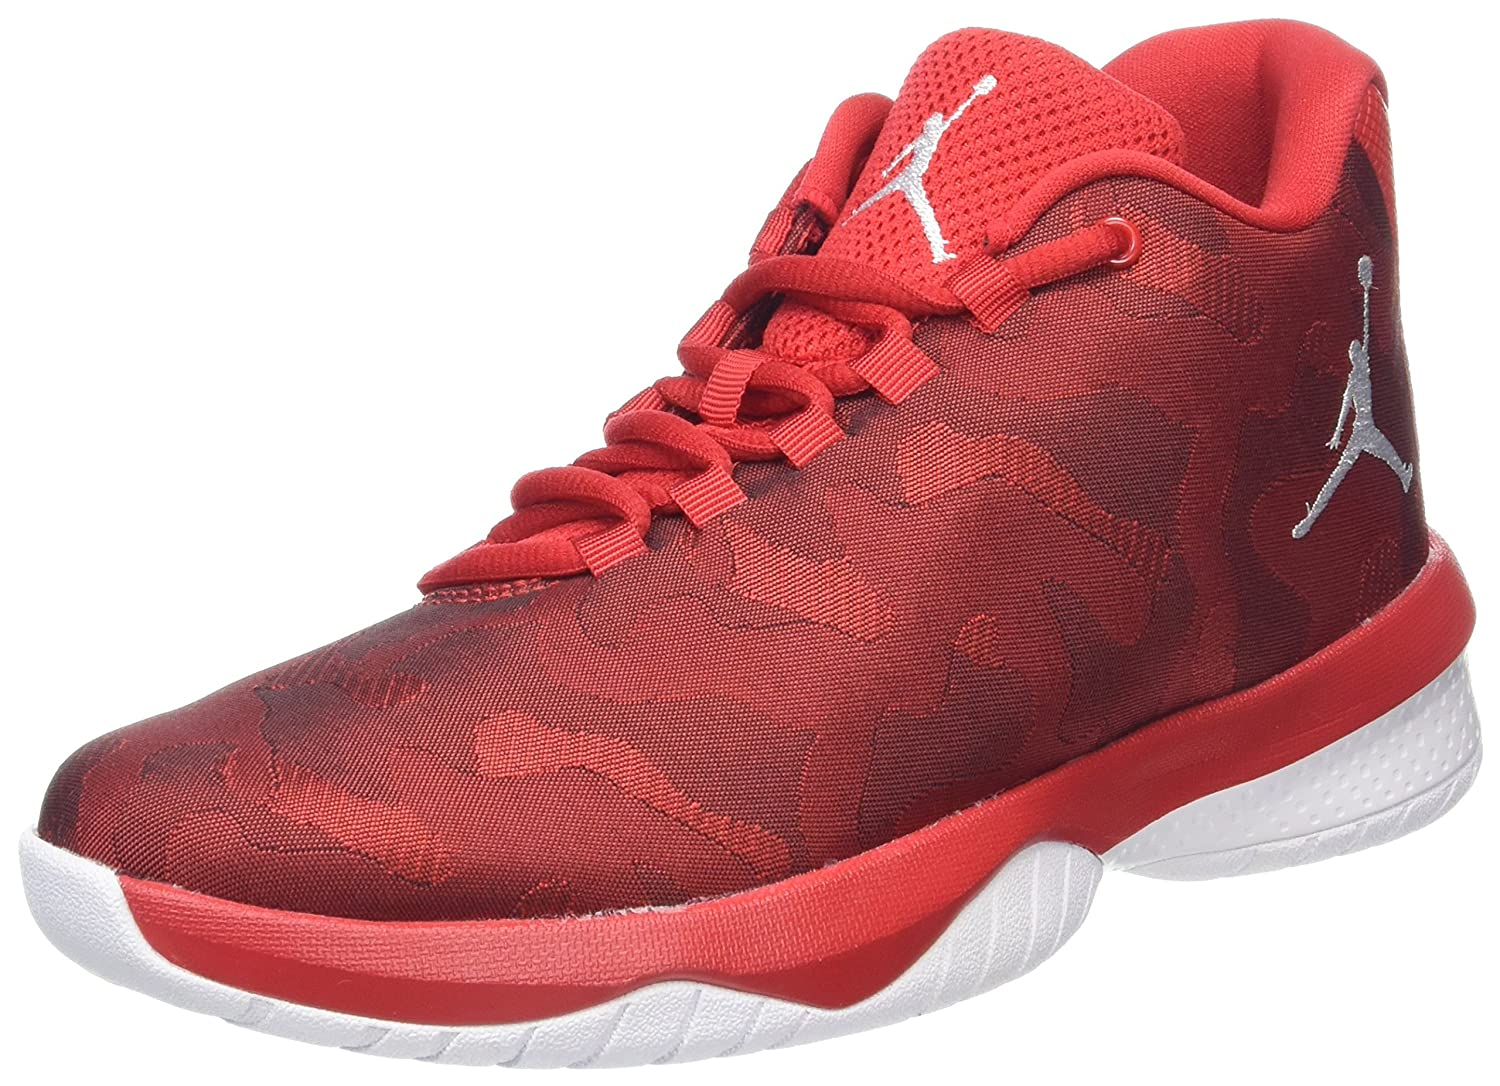 Nike Jungen Jordan B. Fly BG Basketballschuhe Rot (University Red/White) 36.5 EU 881446